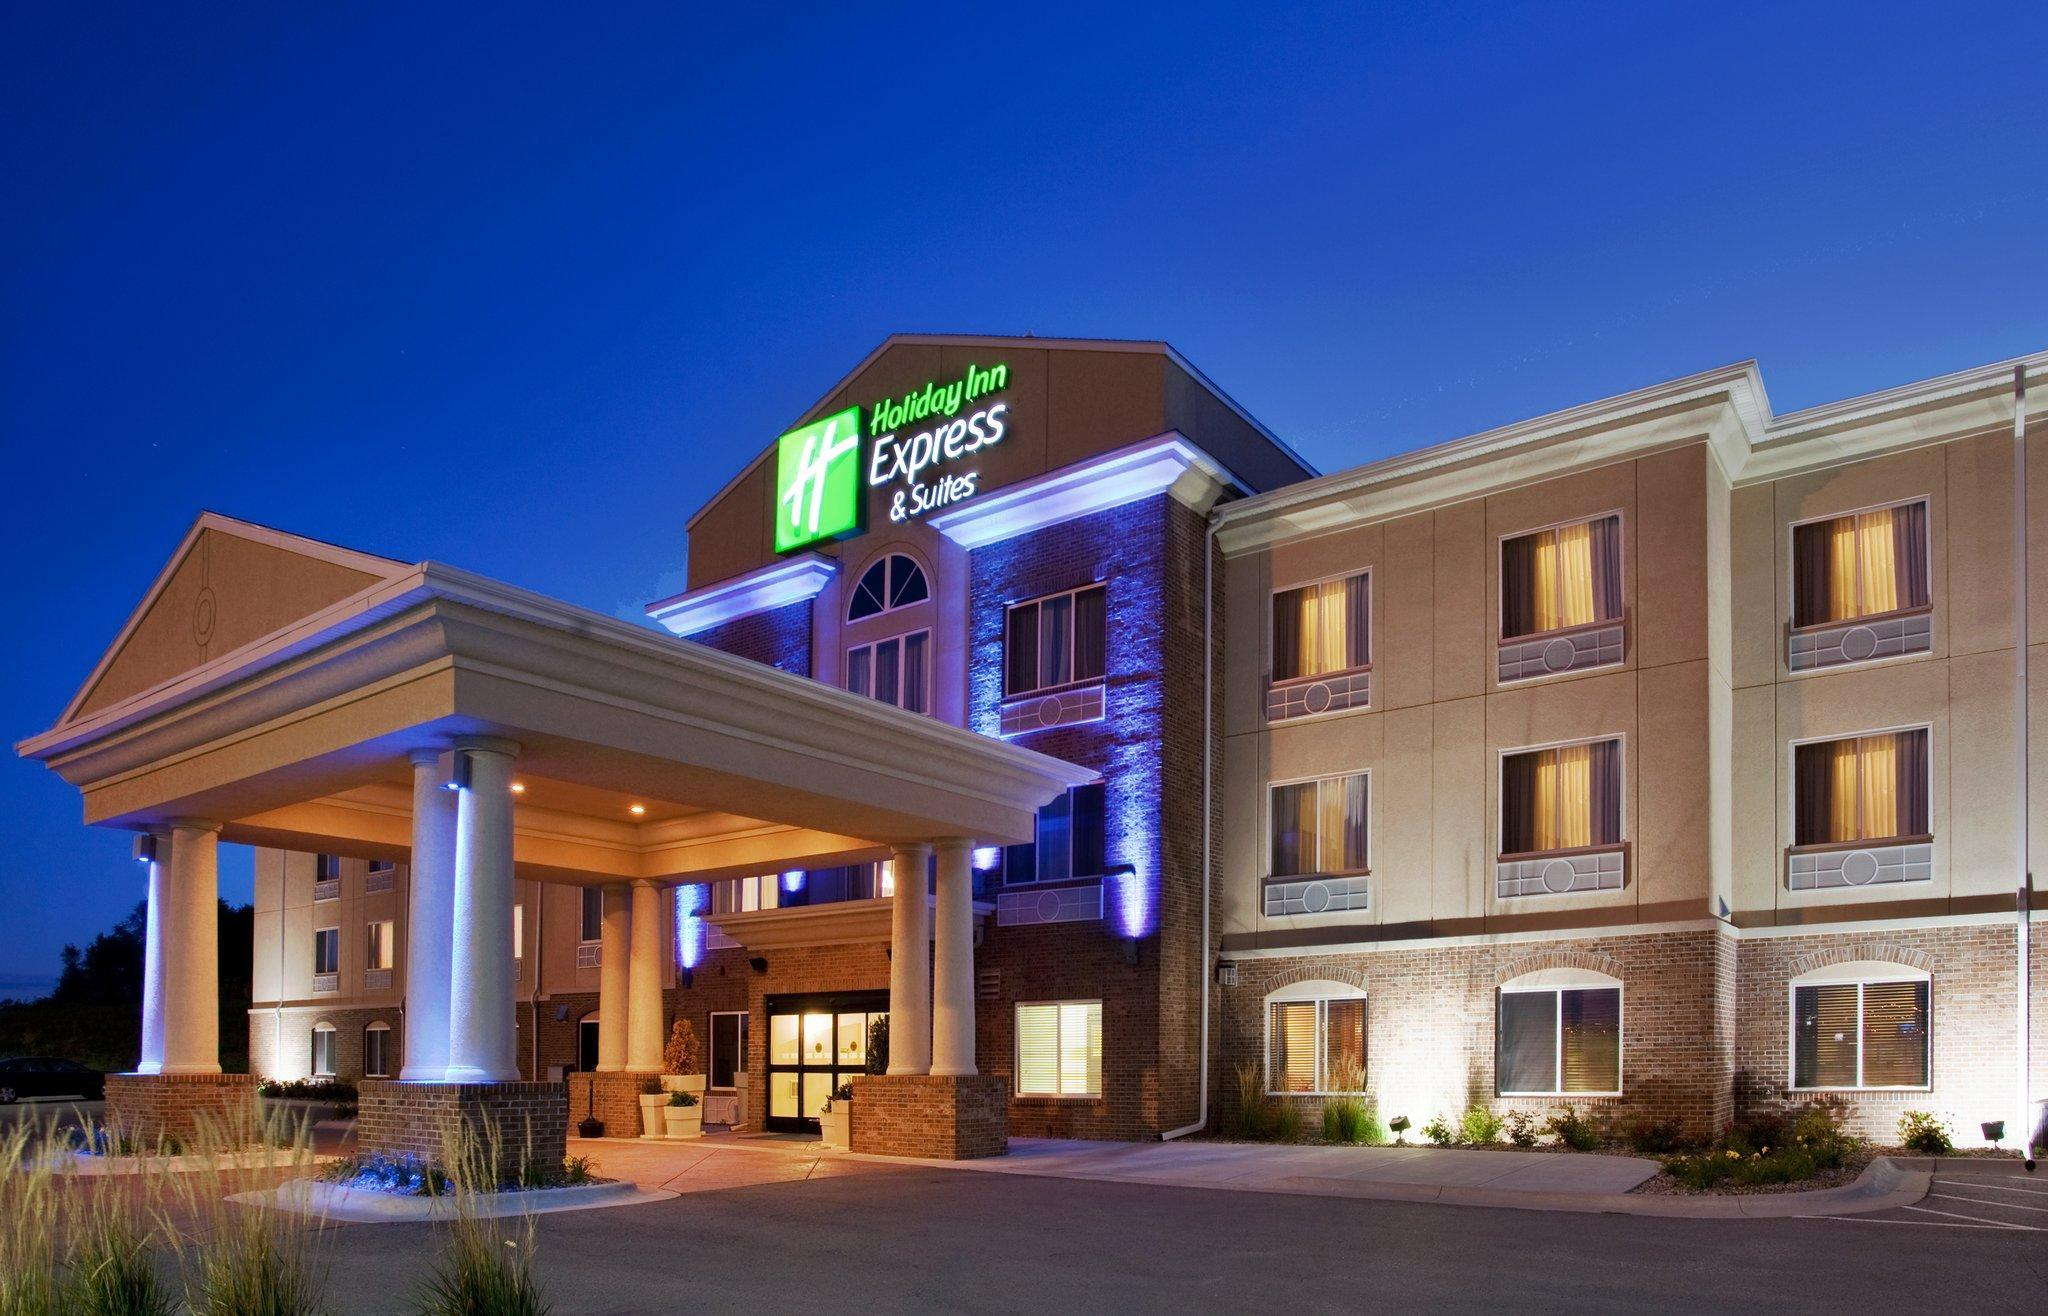 Holiday Inn Express Hotel And Suites Cherry Hills